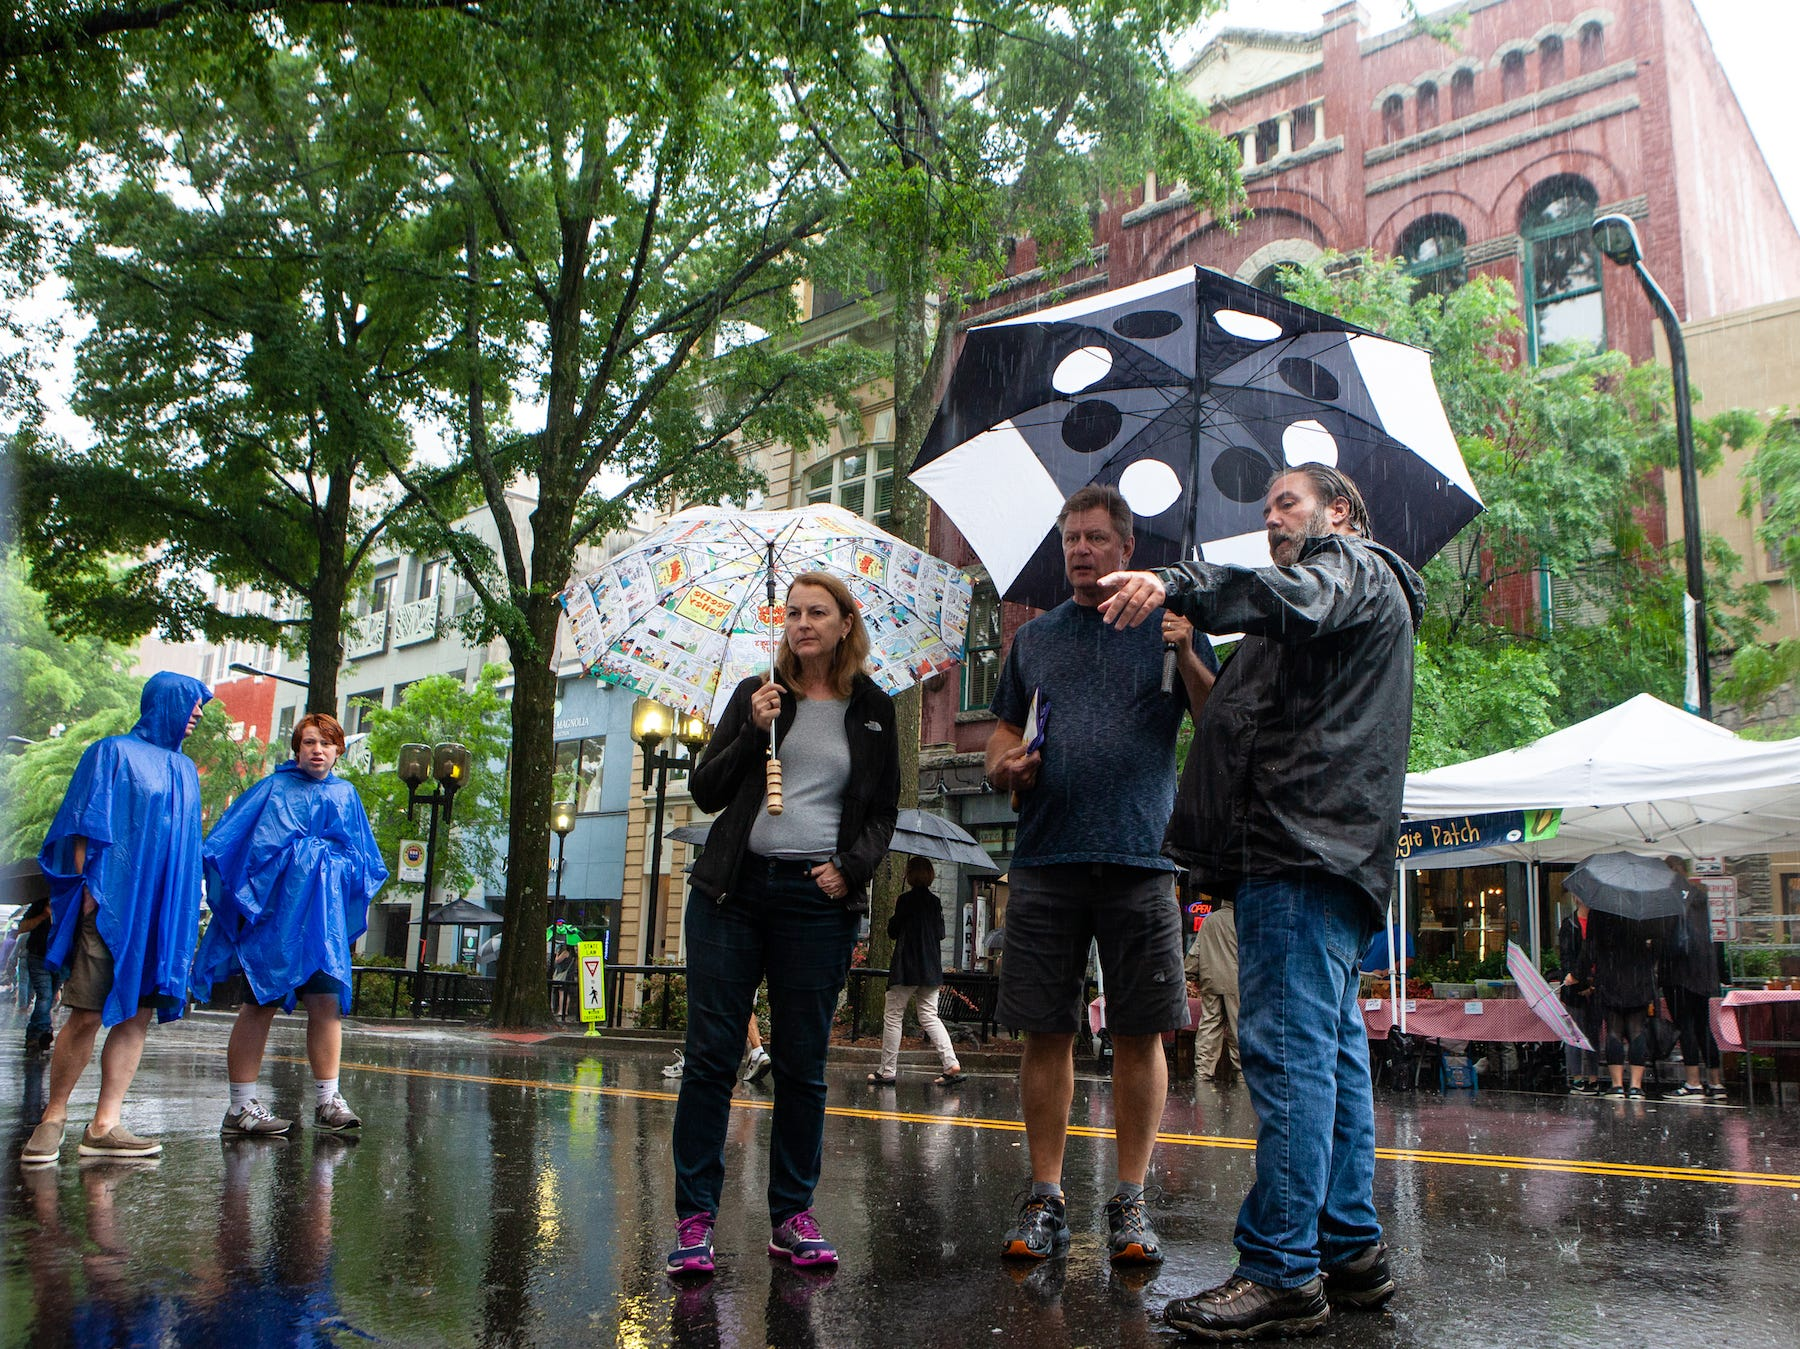 Despite the rainy weather people came to enjoy the art, crafts, shows and more at Artisphere in Greenville on Saturday, May 11, 2019.